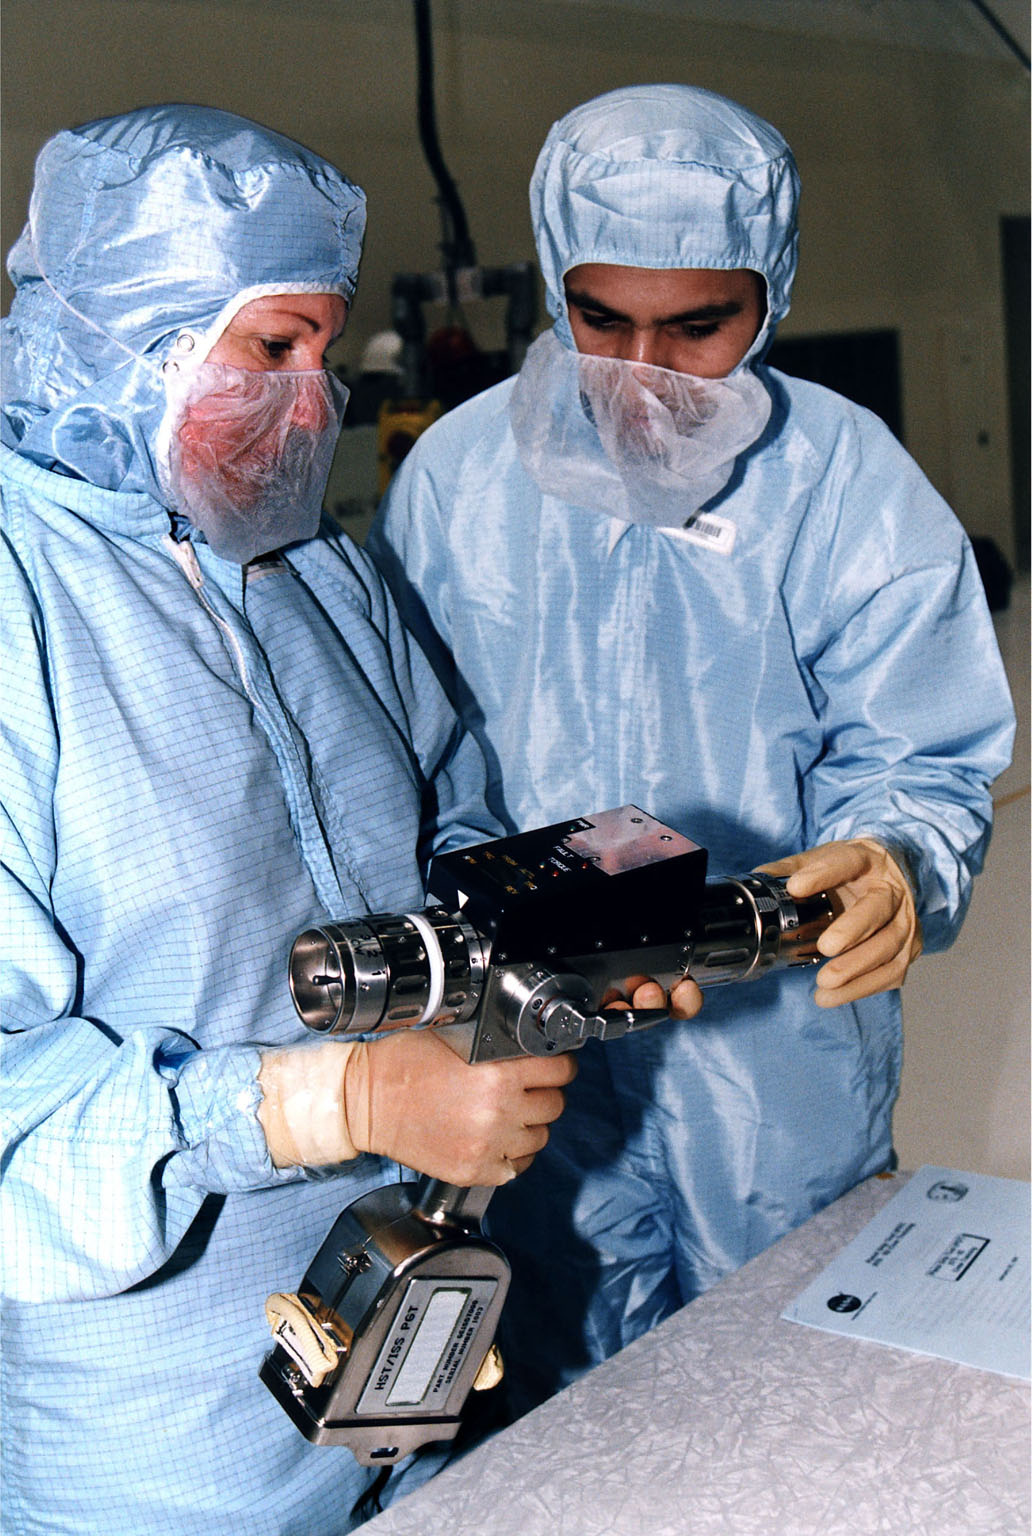 KENNEDY SPACE CENTER, FLA. - In KSC's Vertical Processing Facility, Louise Kleba of the Vehicle Integration Test Team (VITT) and engineer Devin Tailor of Goddard Space Flight Center examine the Pistol Grip Tool (PGT), which was designed for use by astronauts during spacewalks. The PGT is a self-contained, micro-processor controlled, battery-powered tool. It also can be used as a nonpowered ratchet wrench. The experiences of the astronauts on the first Hubble Space Telescope (HST) servicing mission led to recommendations for this smaller, more efficient tool for precision work during spacewalks. The PGT will be used on the second HST servicing mission, STS-82. Liftoff aboard Discovery is scheduled Feb. 11.